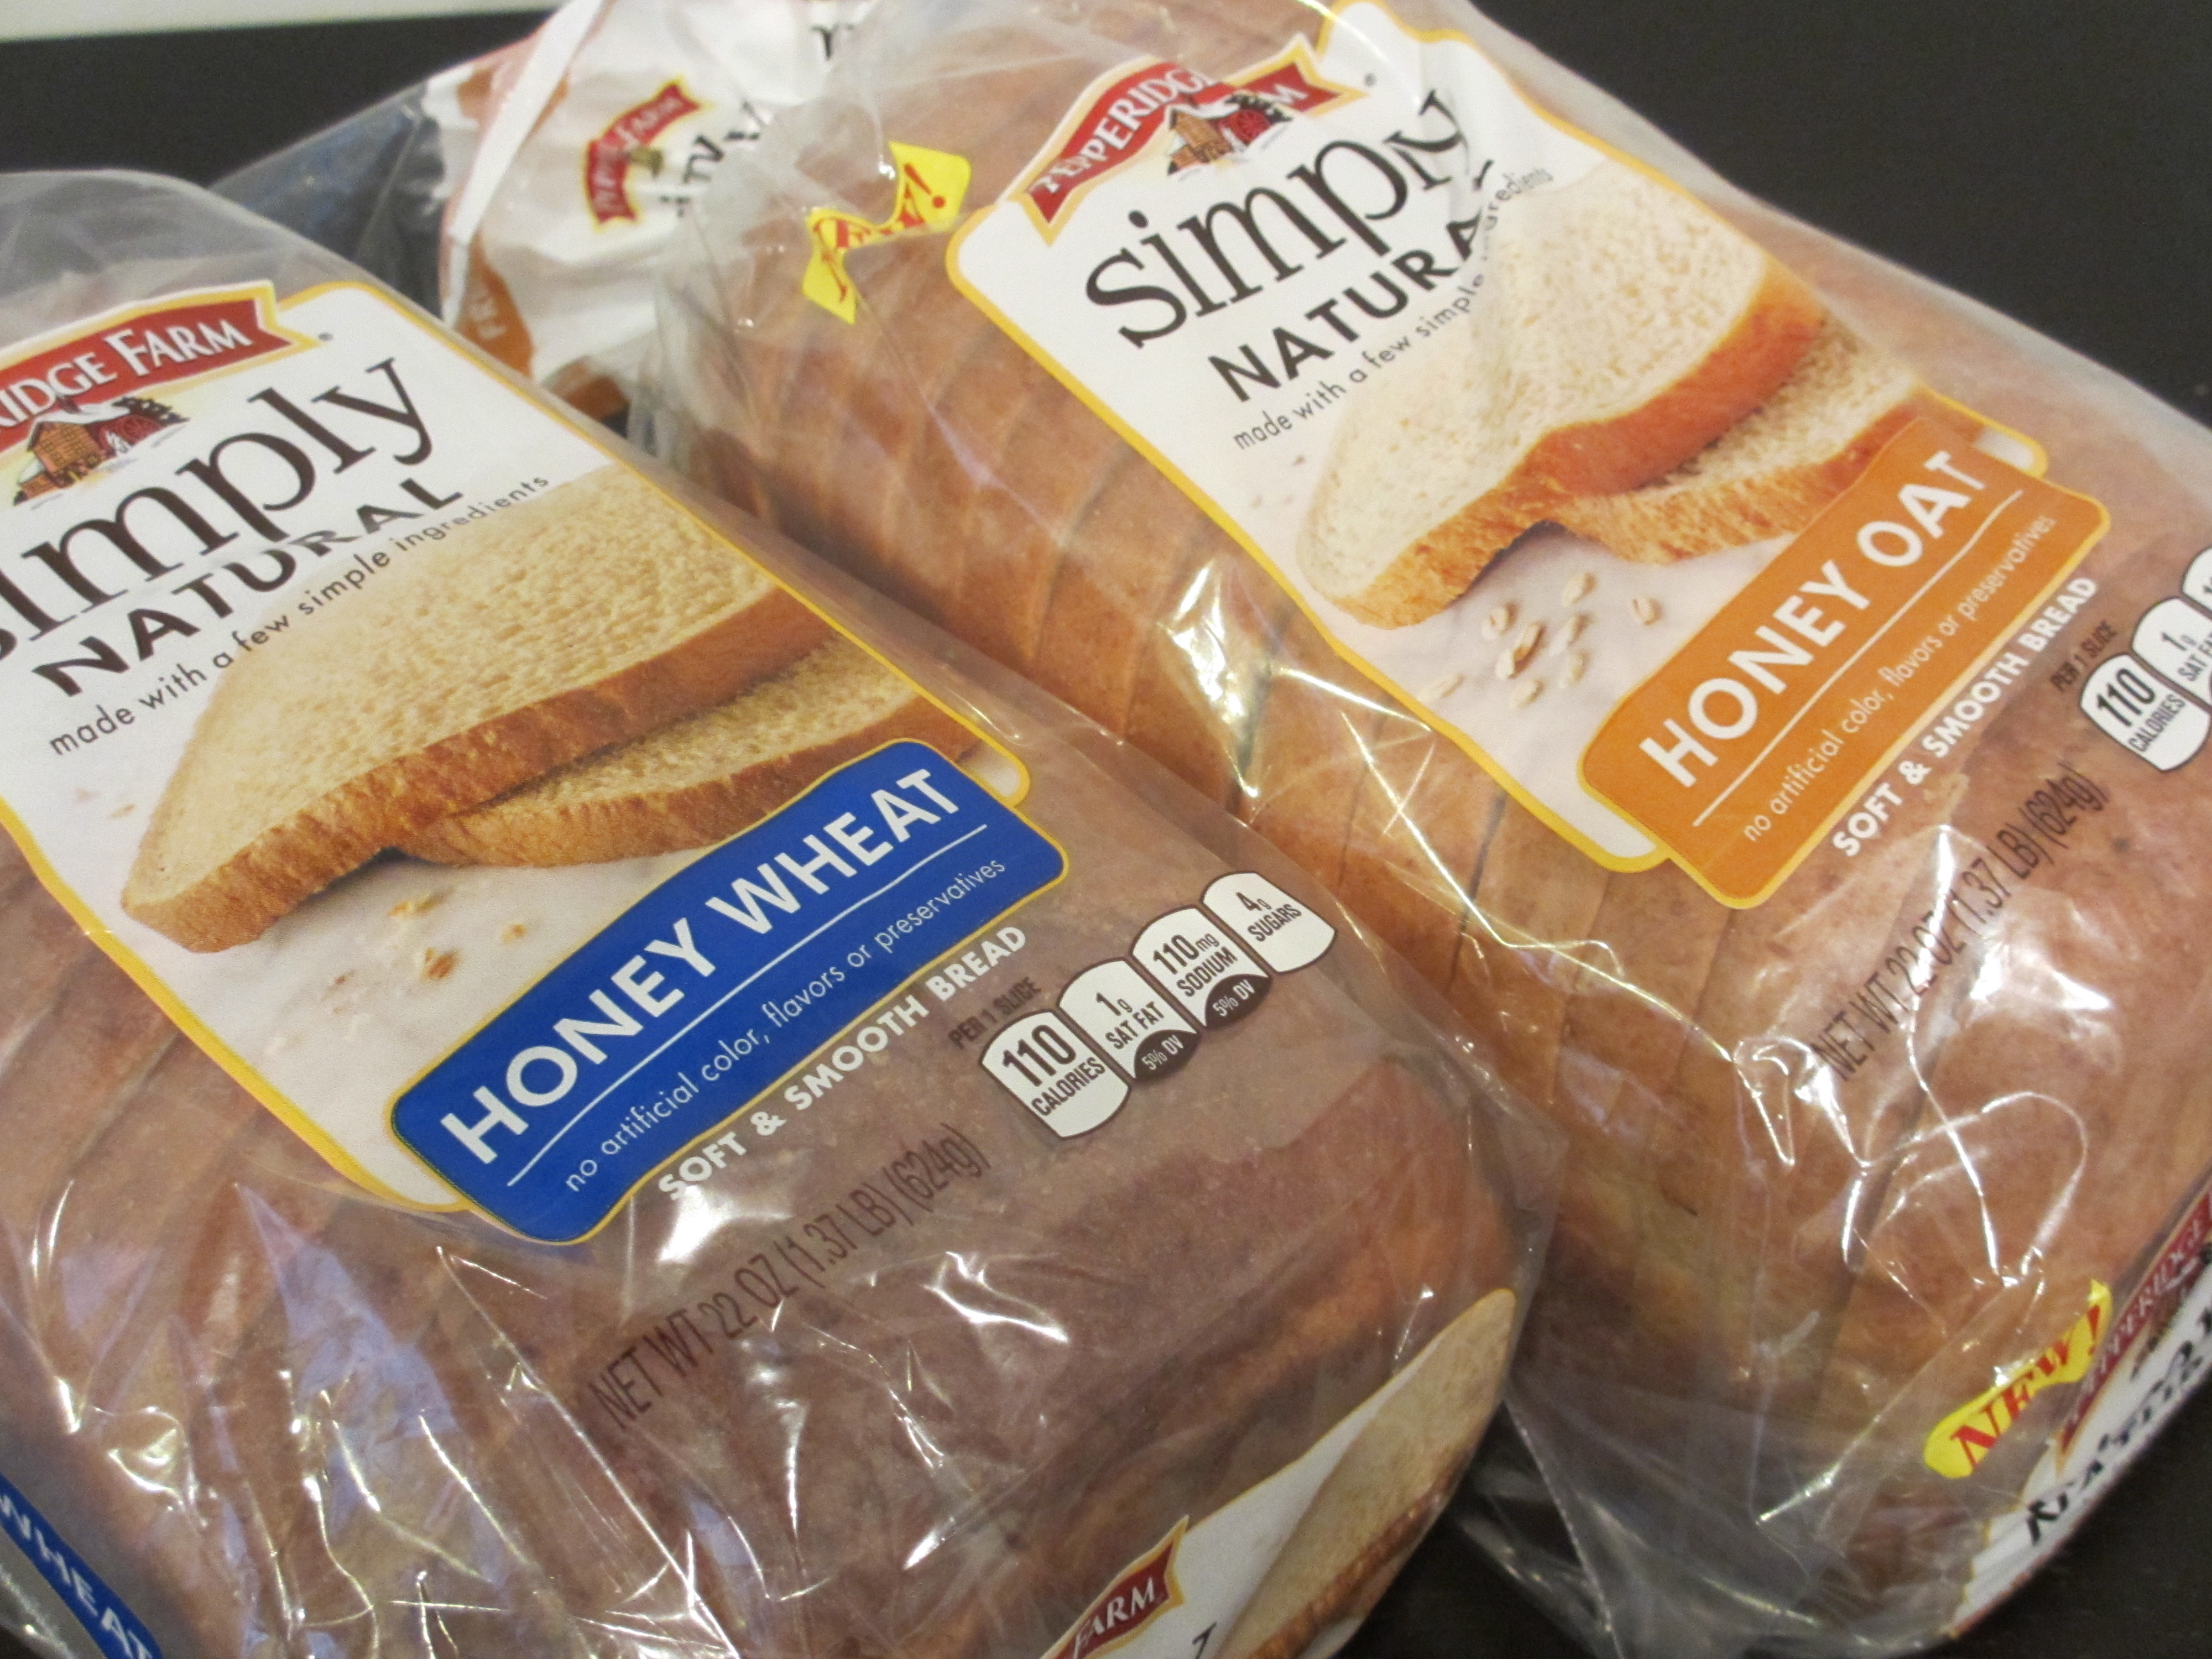 They Pride Themselves On Using Whole Grains With Whole Wheat Flour Honey Milk Butter And Mol In The New Breads Plus There Are No Artificial Colors